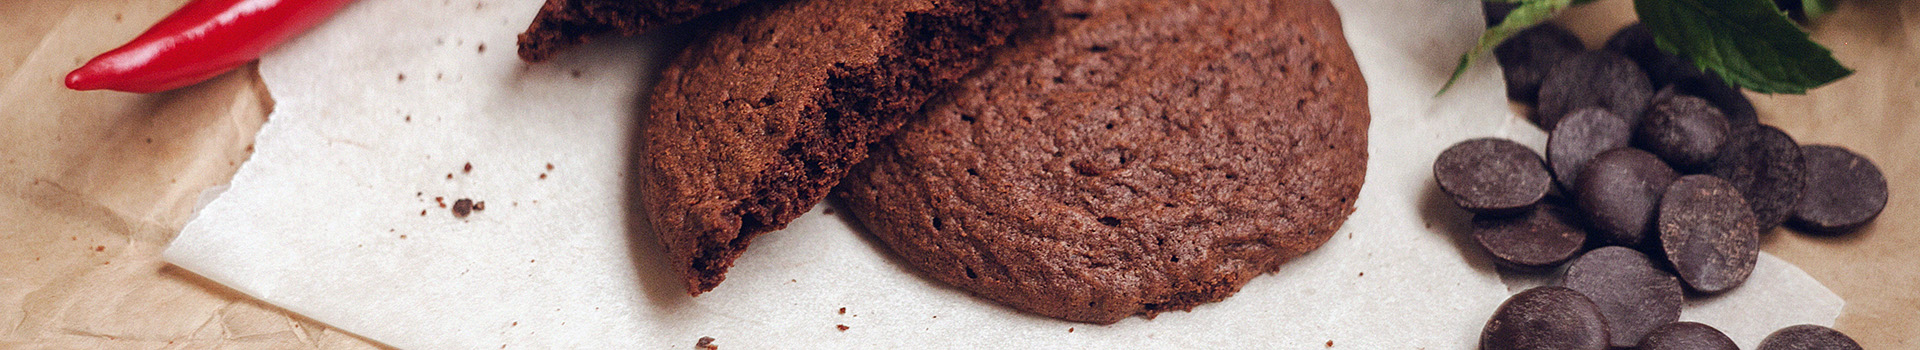 Chilli Chocolate Biscuits